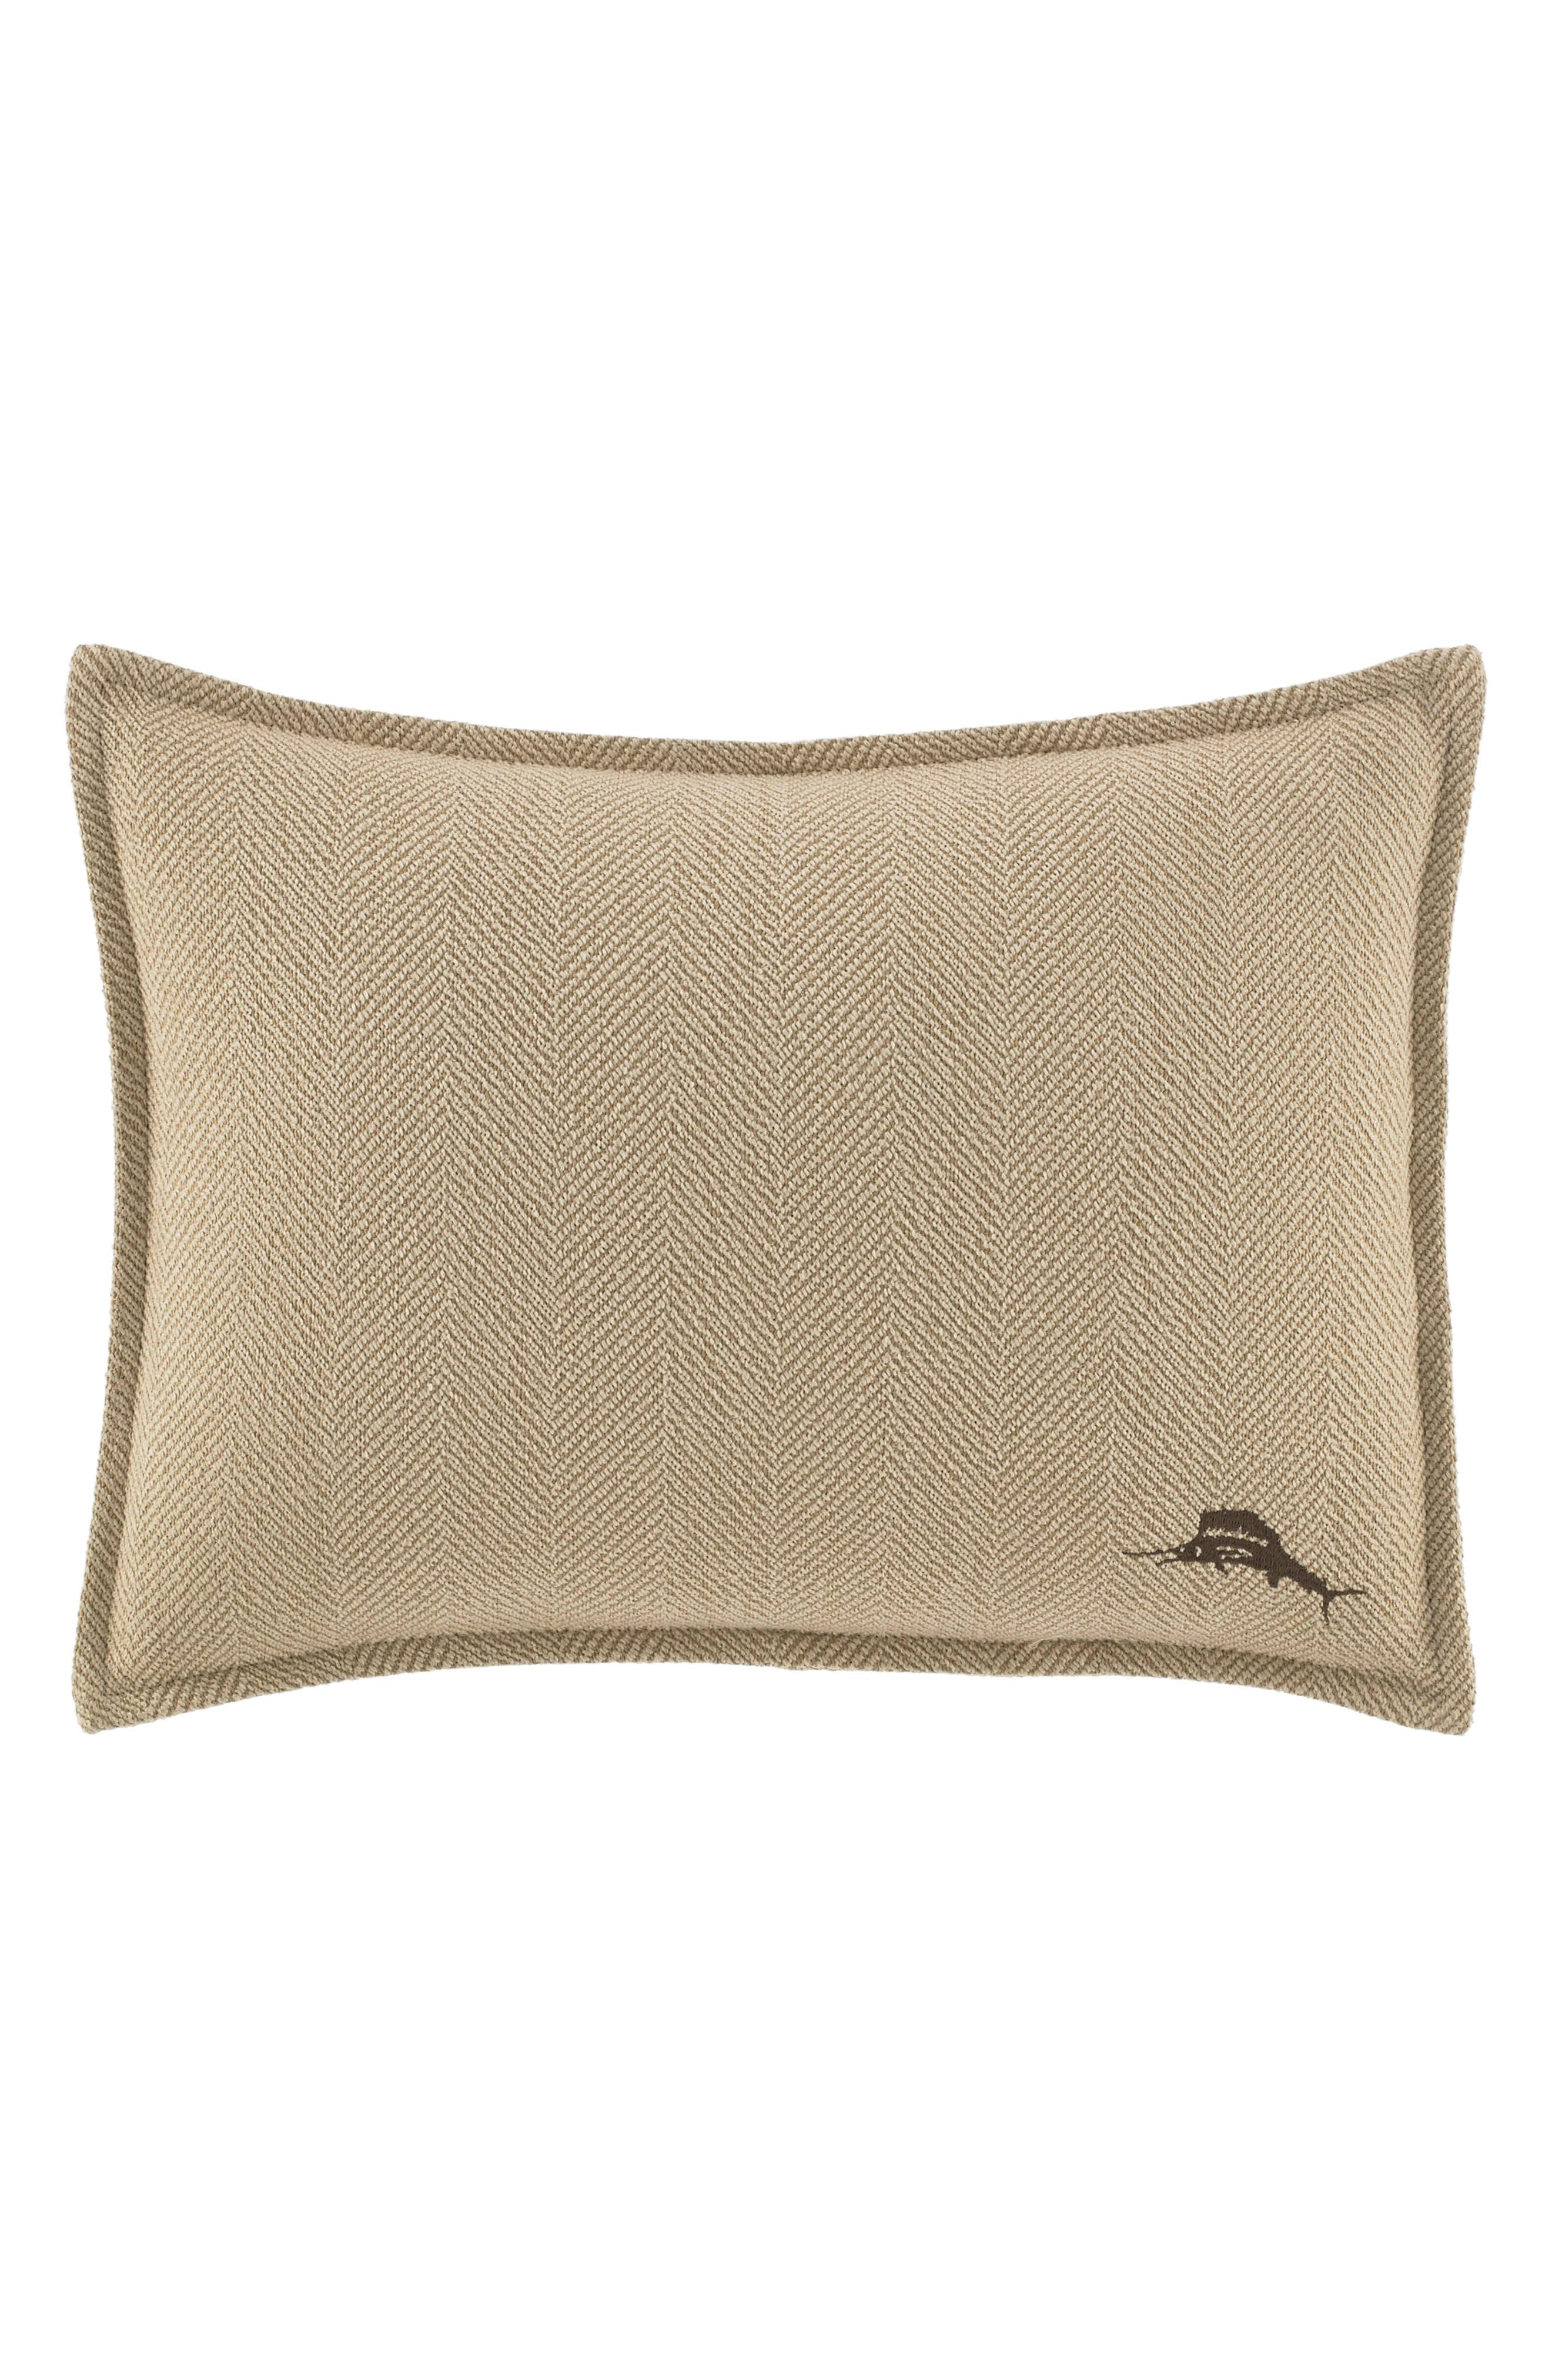 TOMMY BAHAMA,                             Stripe Canvas Accent Pillow,                             Main thumbnail 1, color,                             250